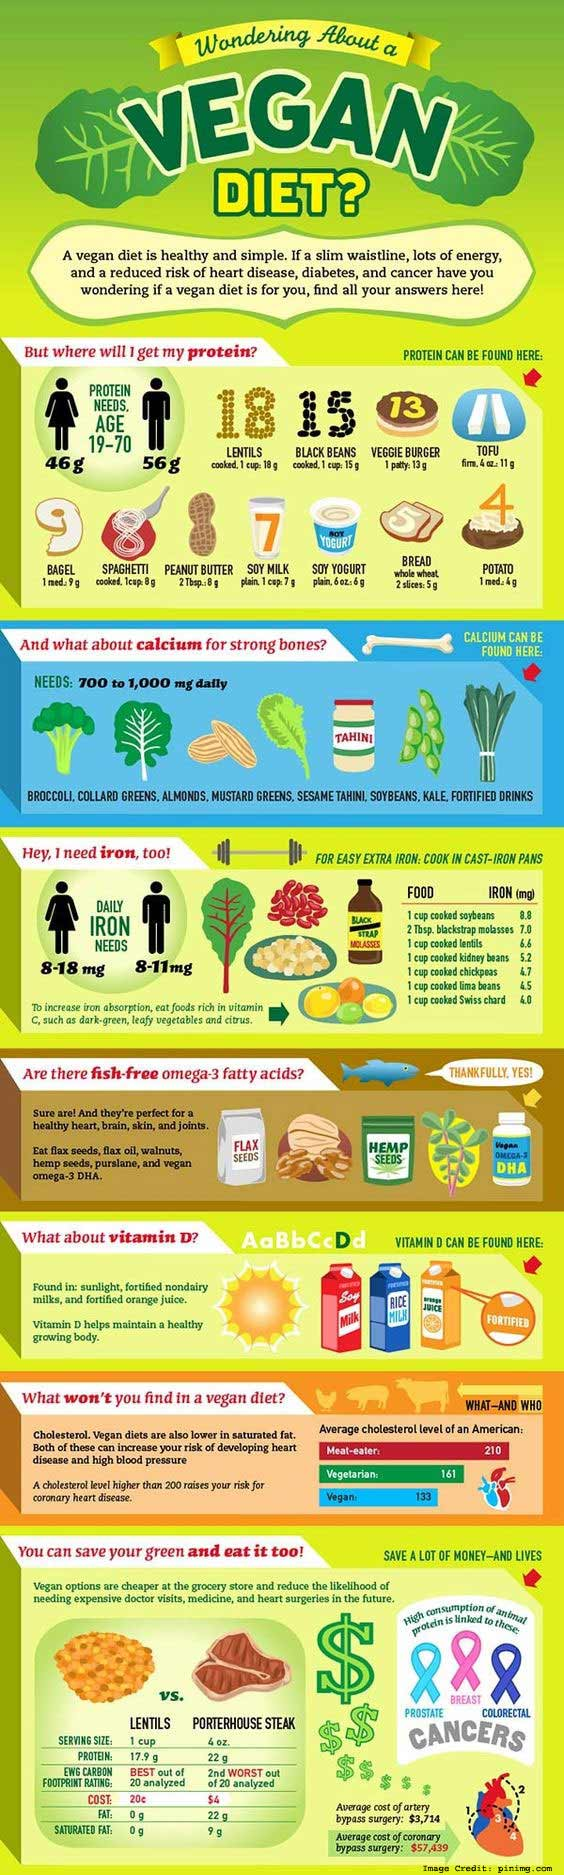 Vegan Diet Info